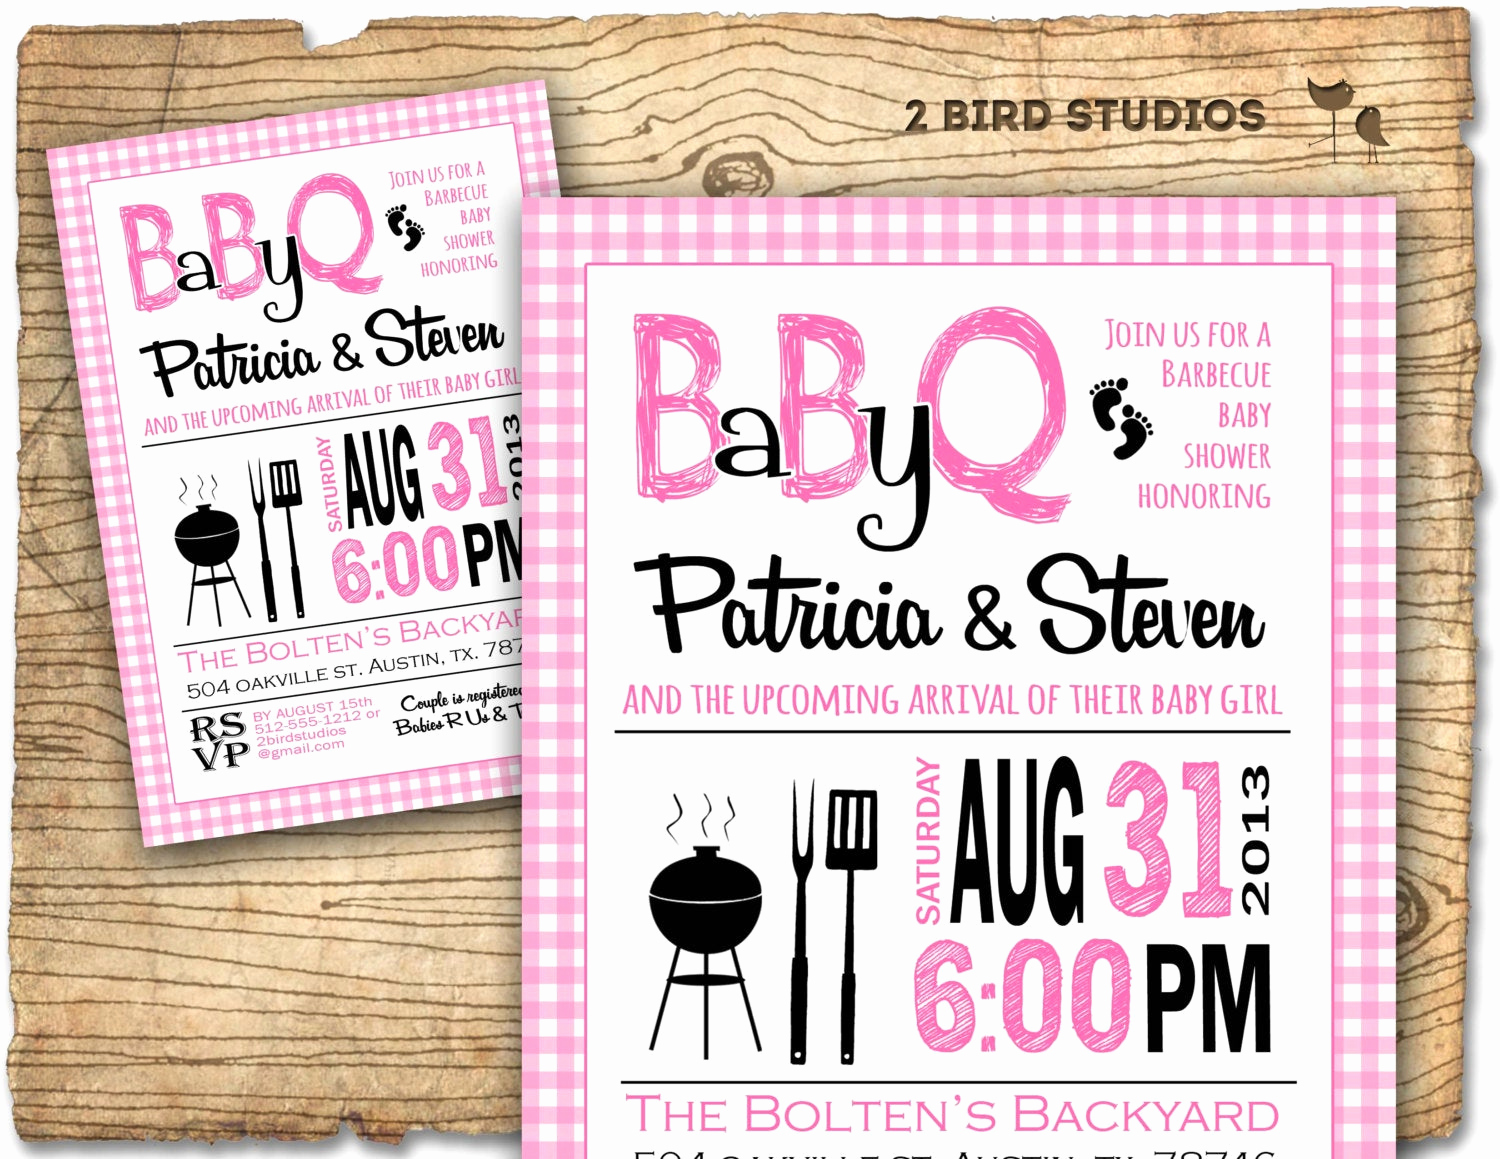 Baby Shower Bbq Invitation Best Of Bbq Baby Shower Invitation Baby Q Baby Shower Invite Coed